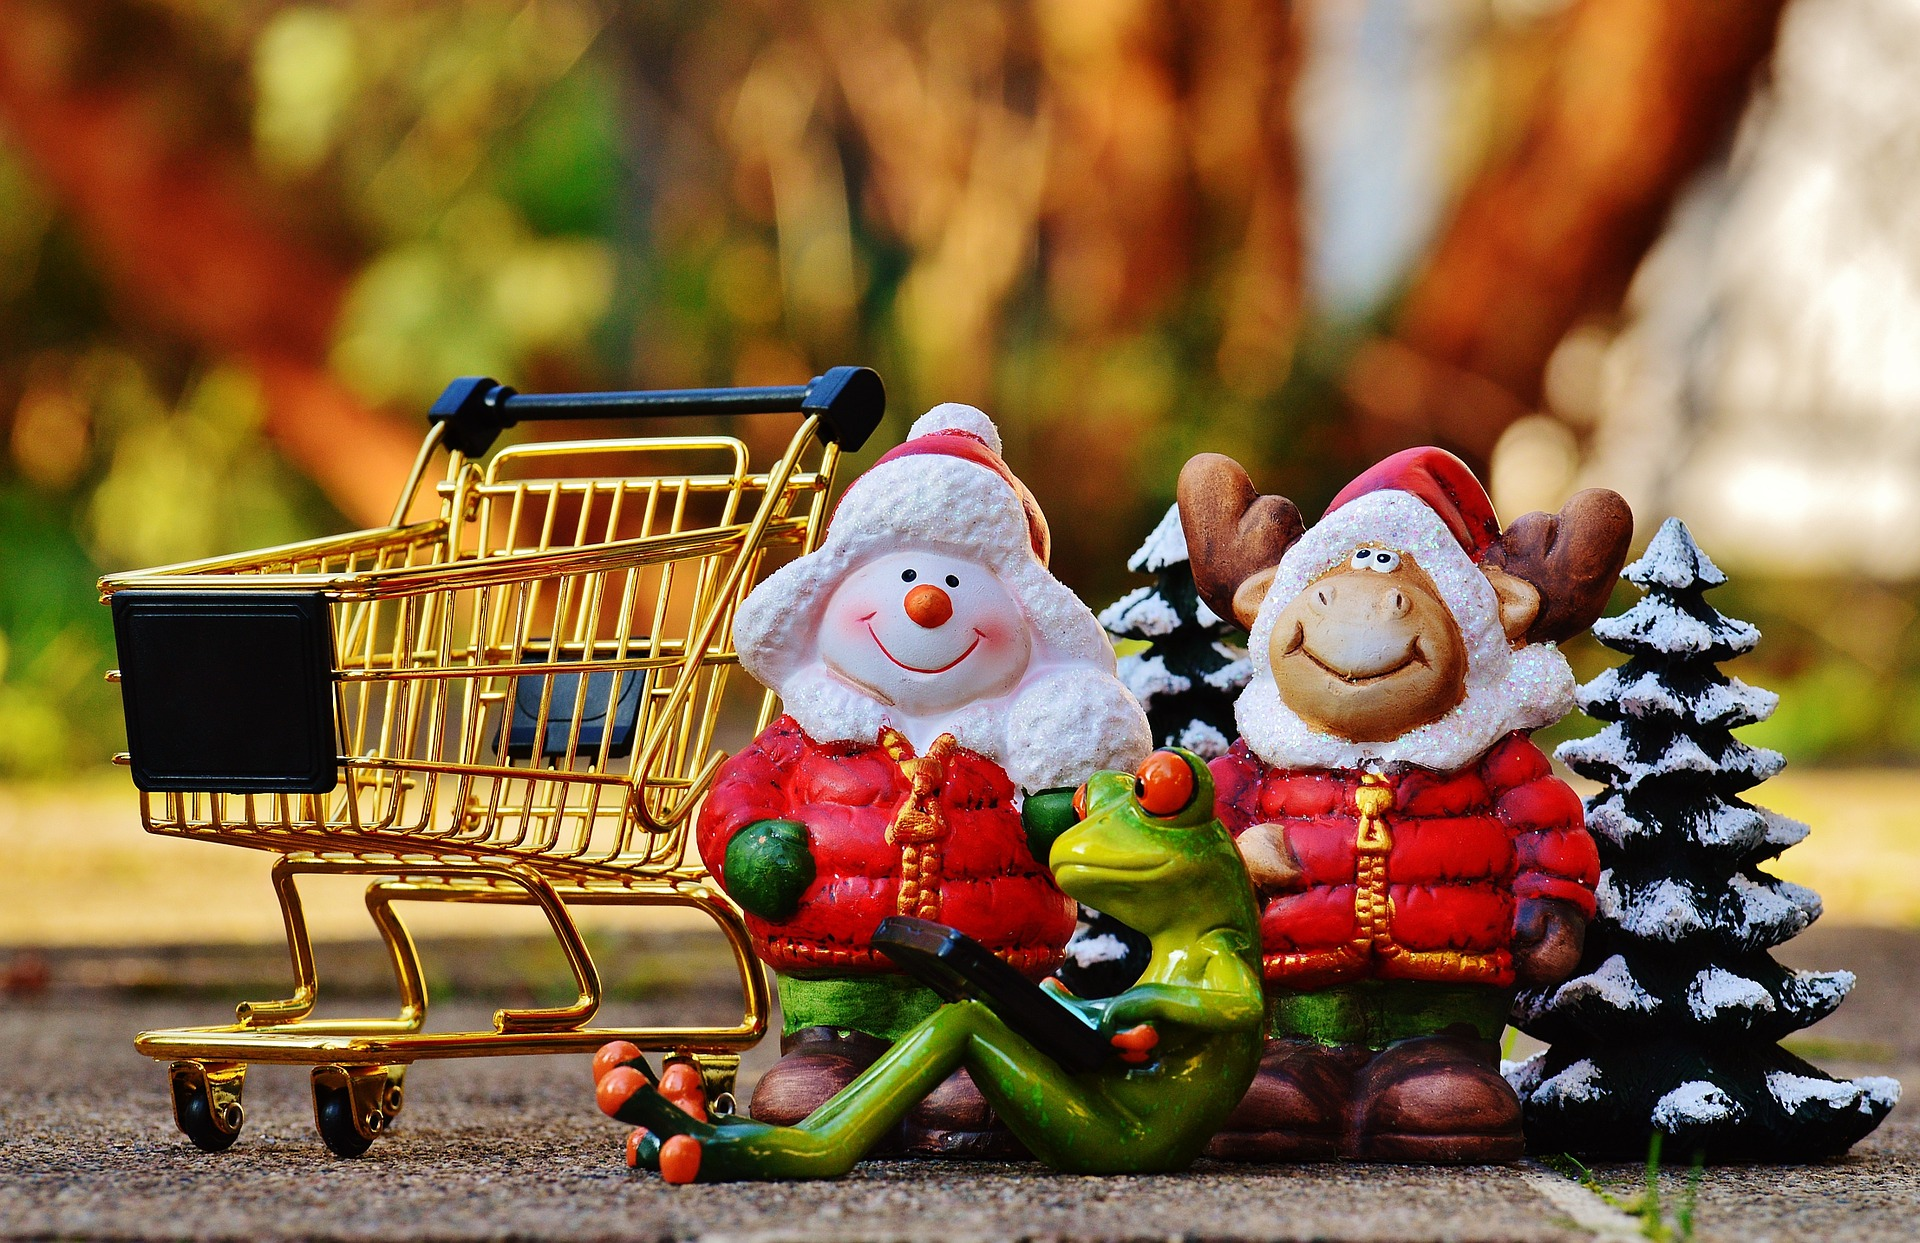 7 selling tips to send your Christmas sales soaring!